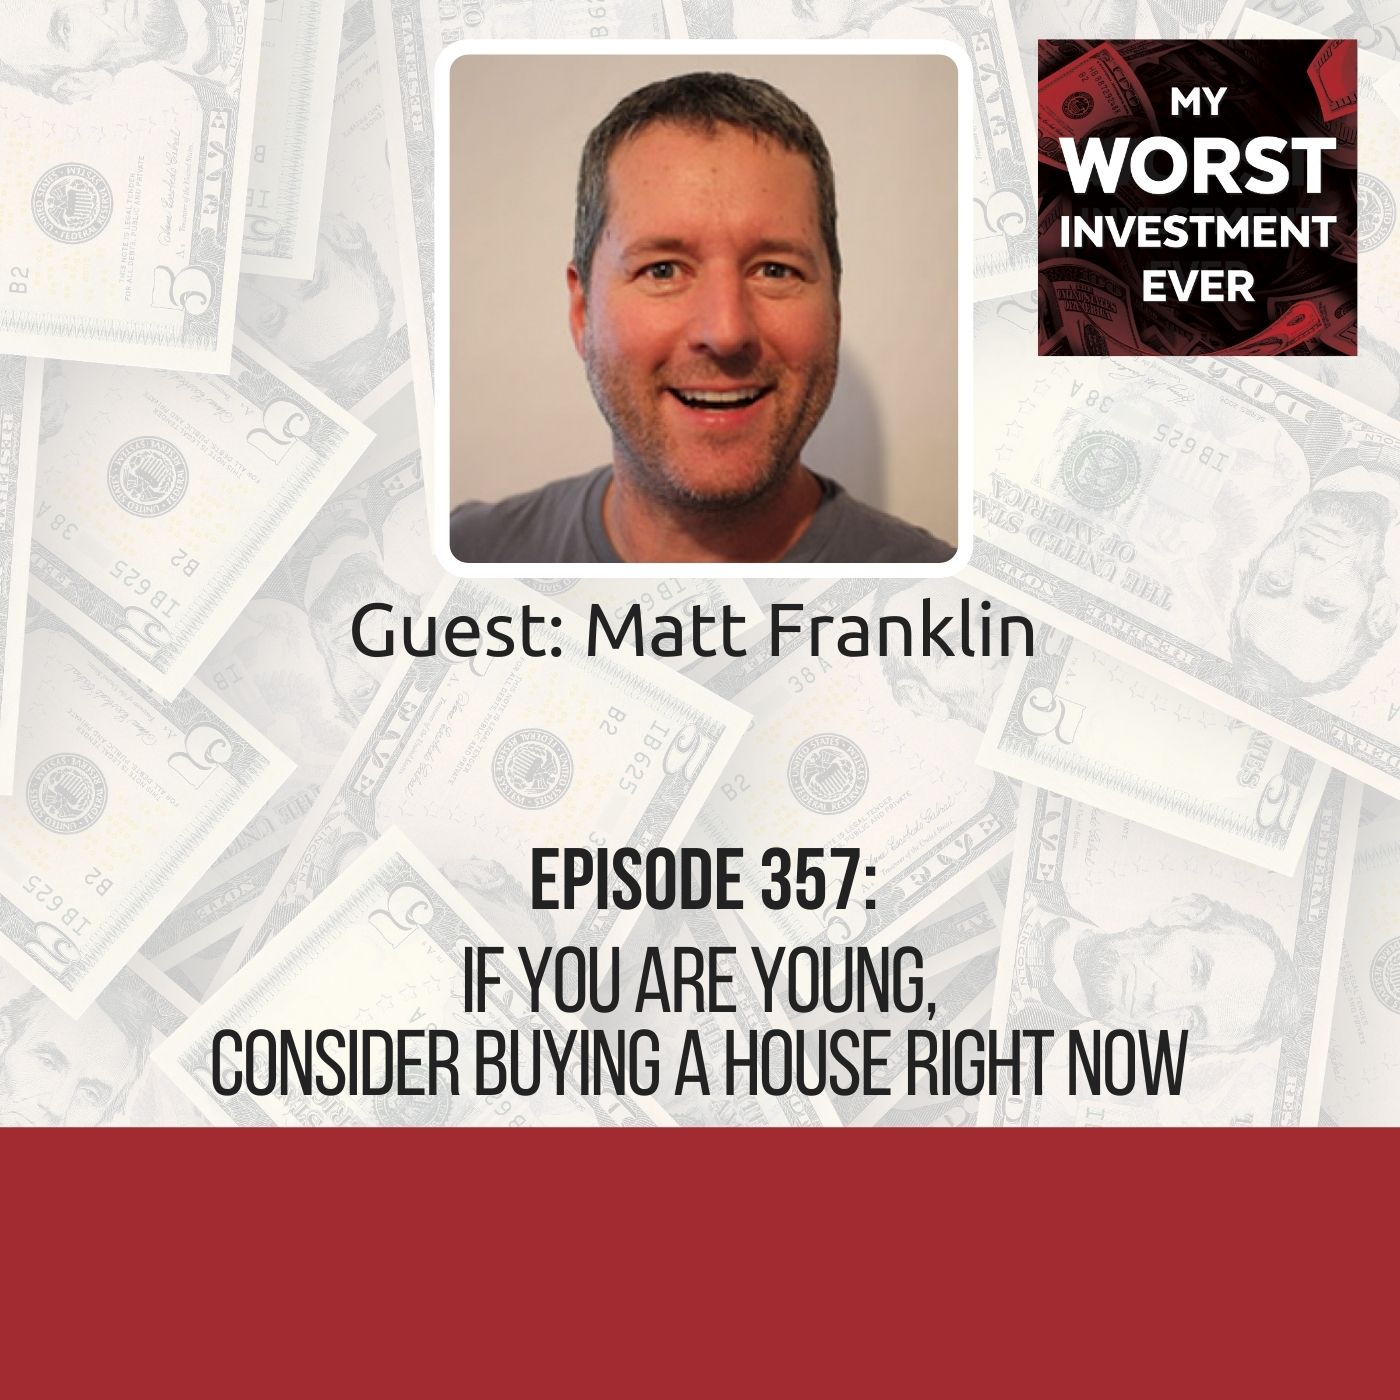 Matt Franklin – If You Are Young, Consider Buying a House Right Now